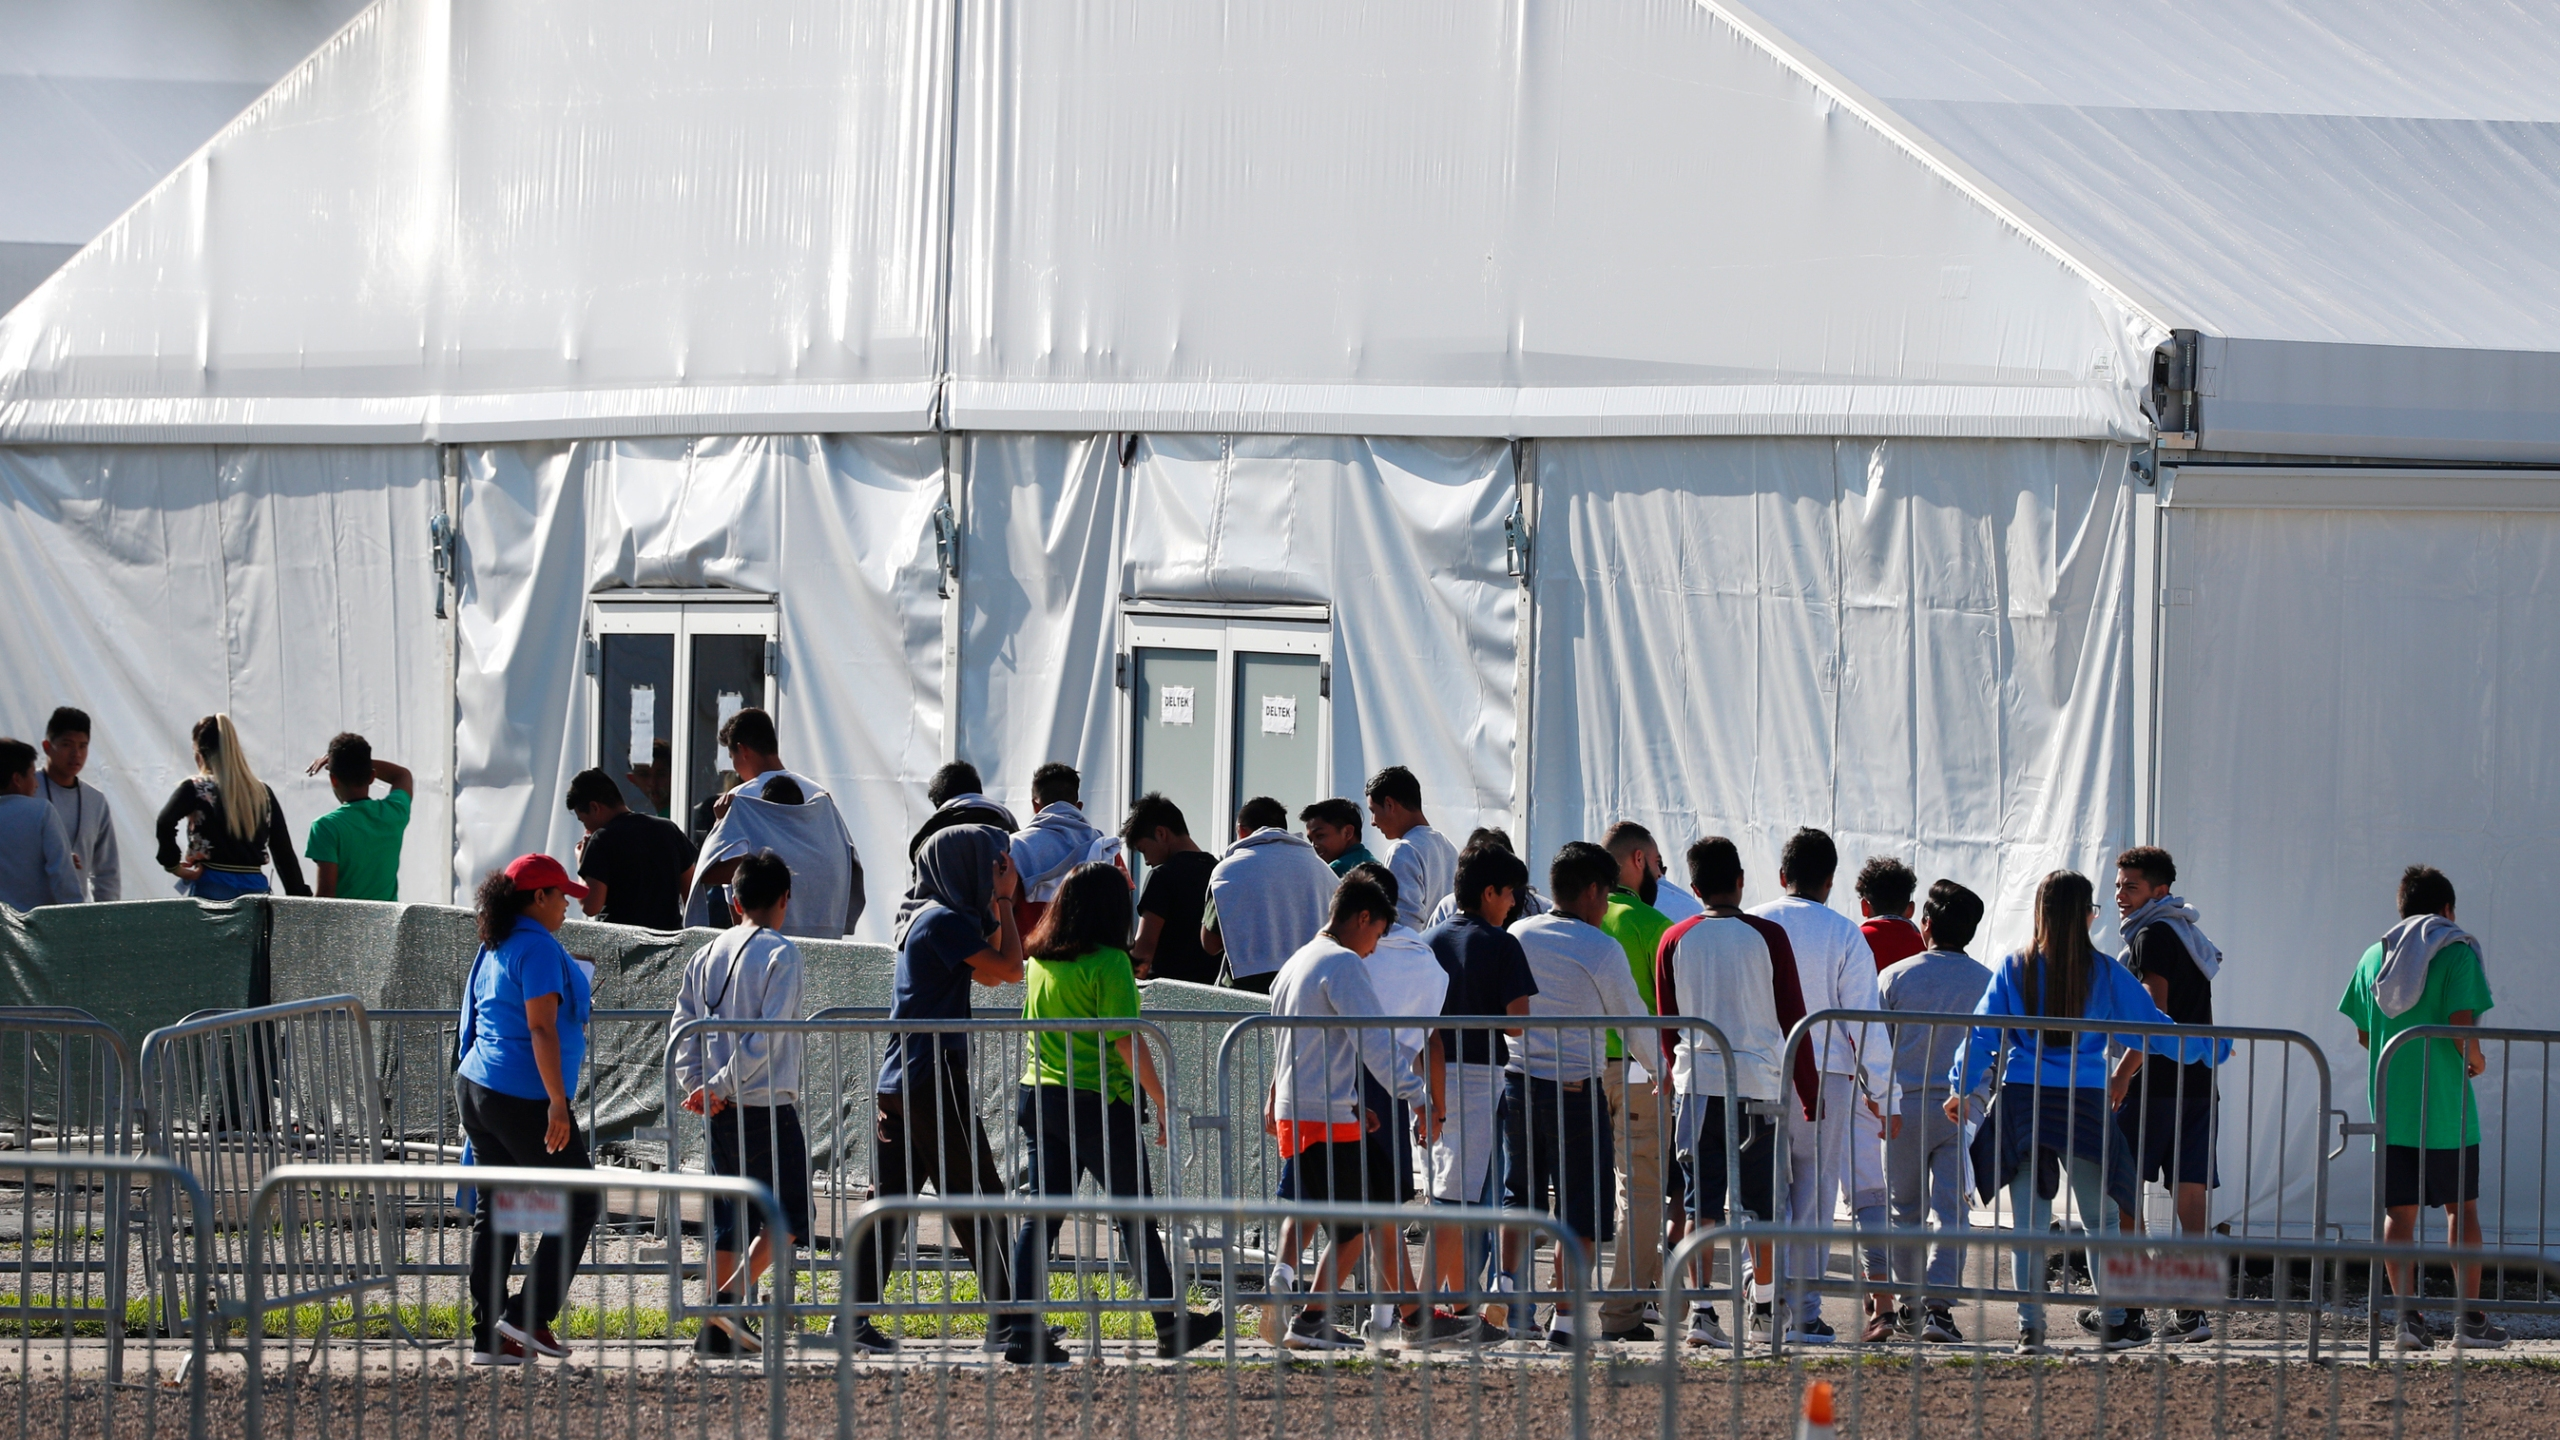 Children line up to enter a tent at the Homestead Temporary Shelter for Unaccompanied Children in Homestead, Florida, on Feb. 19, 2019. (Wilfredo Lee / Associated Press)